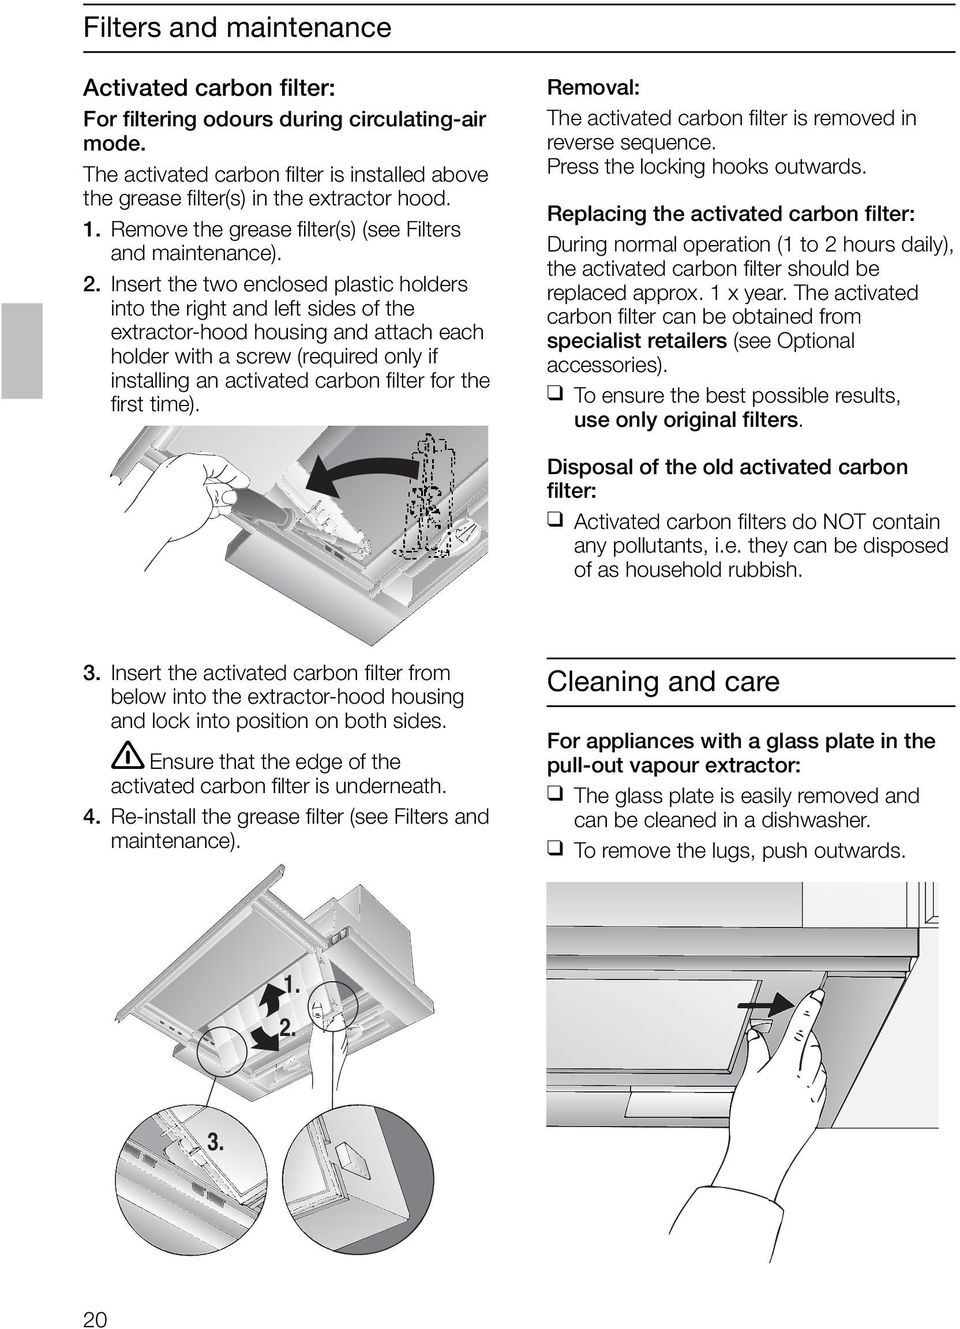 Insert the two enclosed plastic holders into the right and left sides of the extractor-hood housing and attach each holder with a screw (required only if installing an activated carbon filter for the